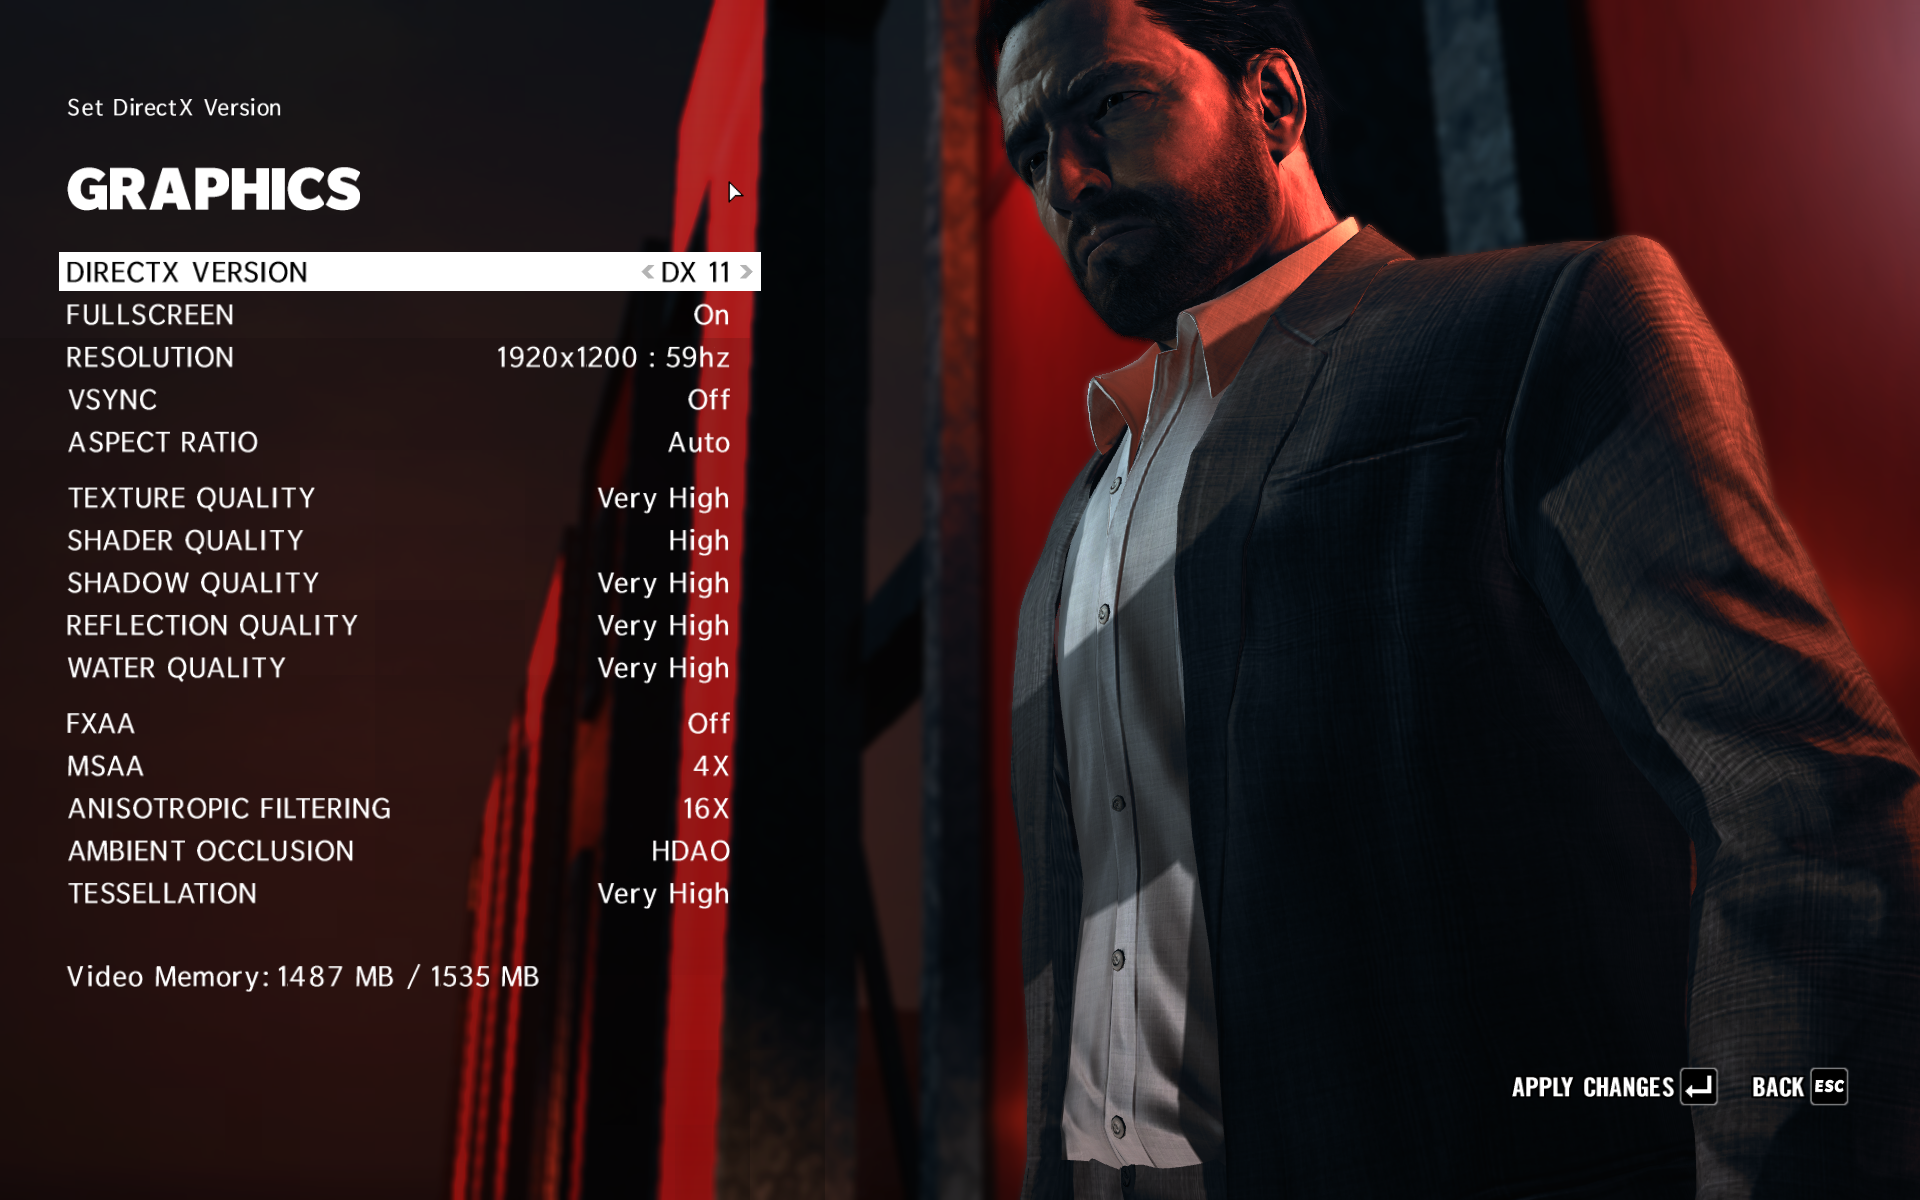 Max Payne 3 Tweak Guide Geforce Dilznoofus39s Tessellation Book Full System Configuration